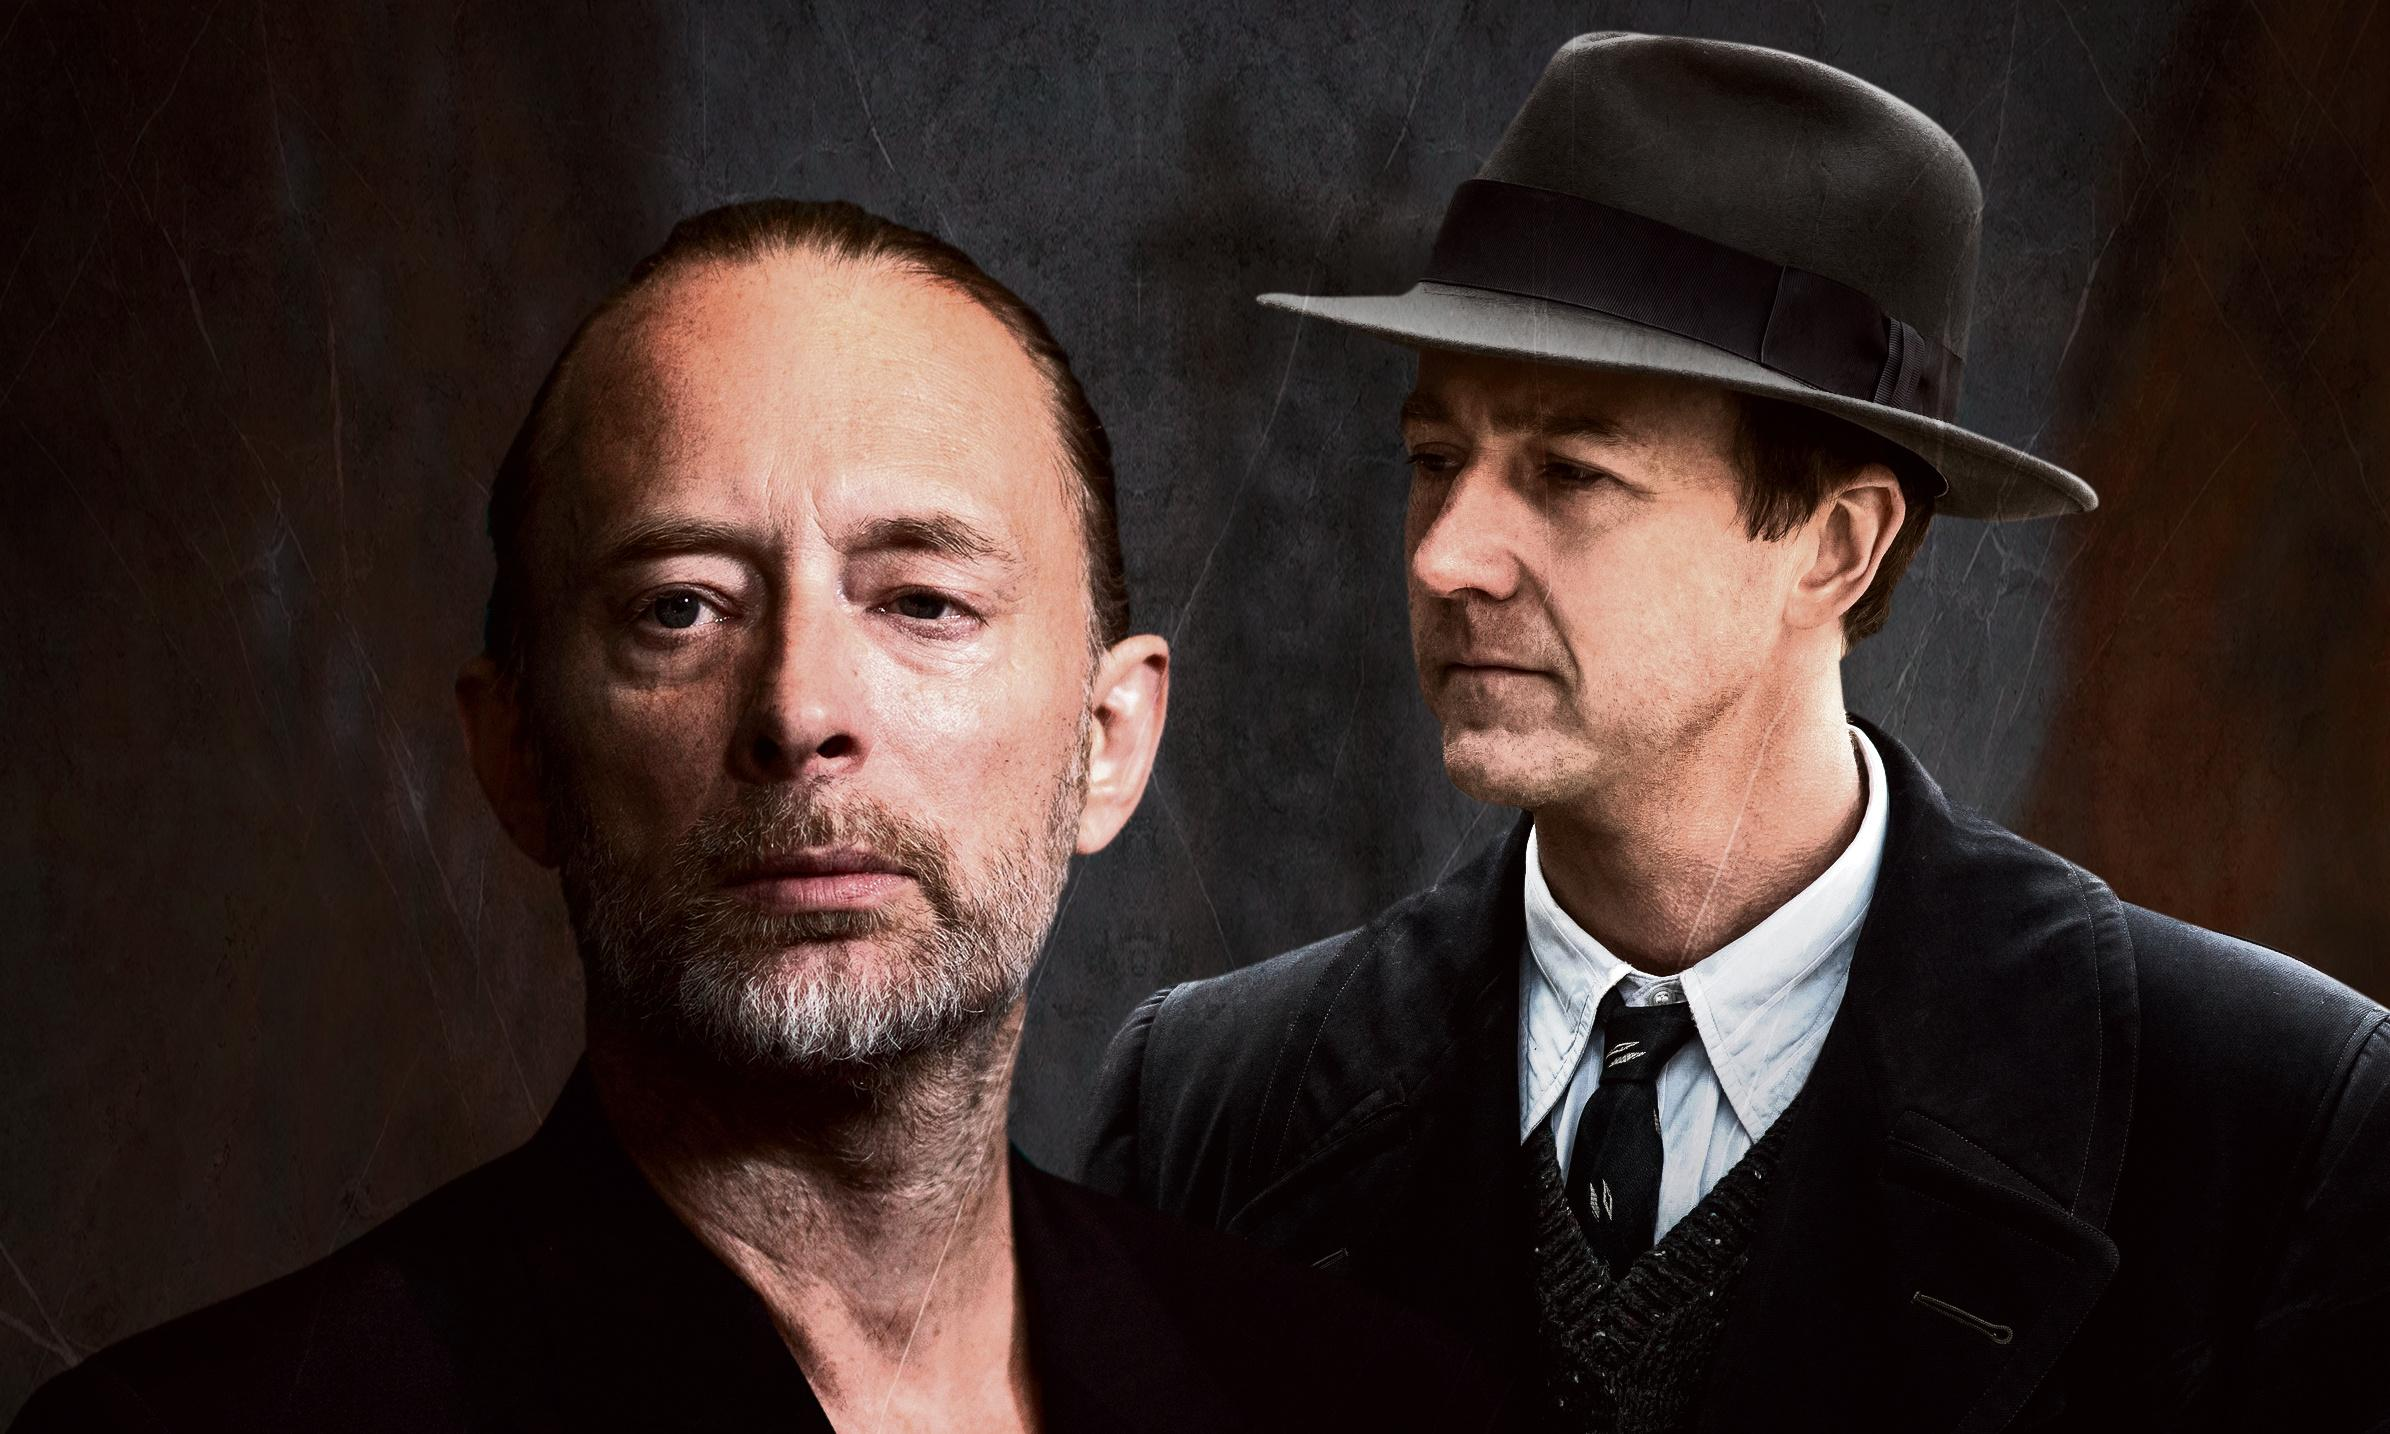 Edward Norton and Thom Yorke: 'The last thing we wanted was for it to get bloody'